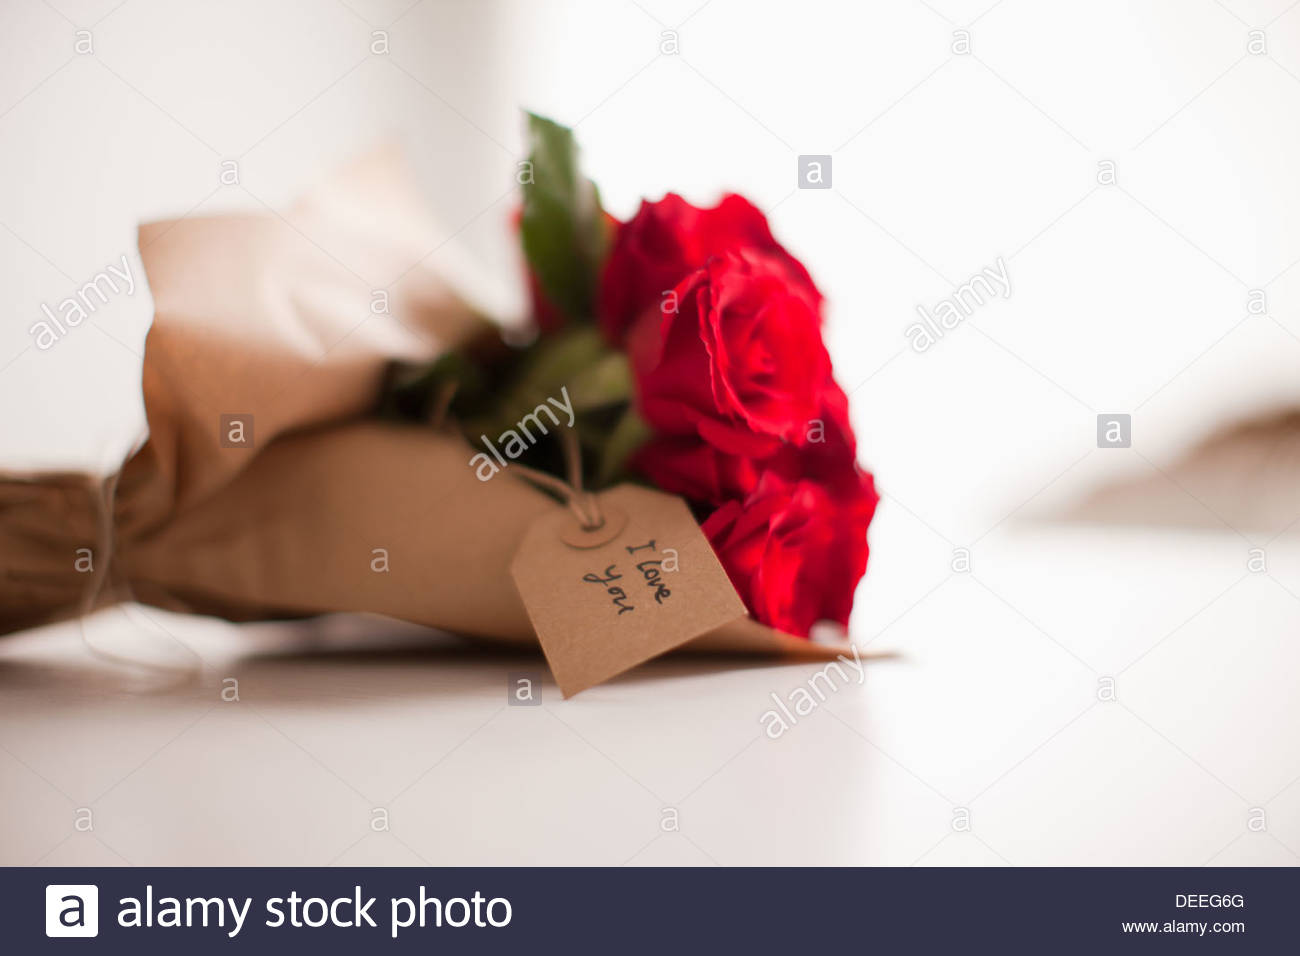 Close up of red roses avec gift tag Photo Stock